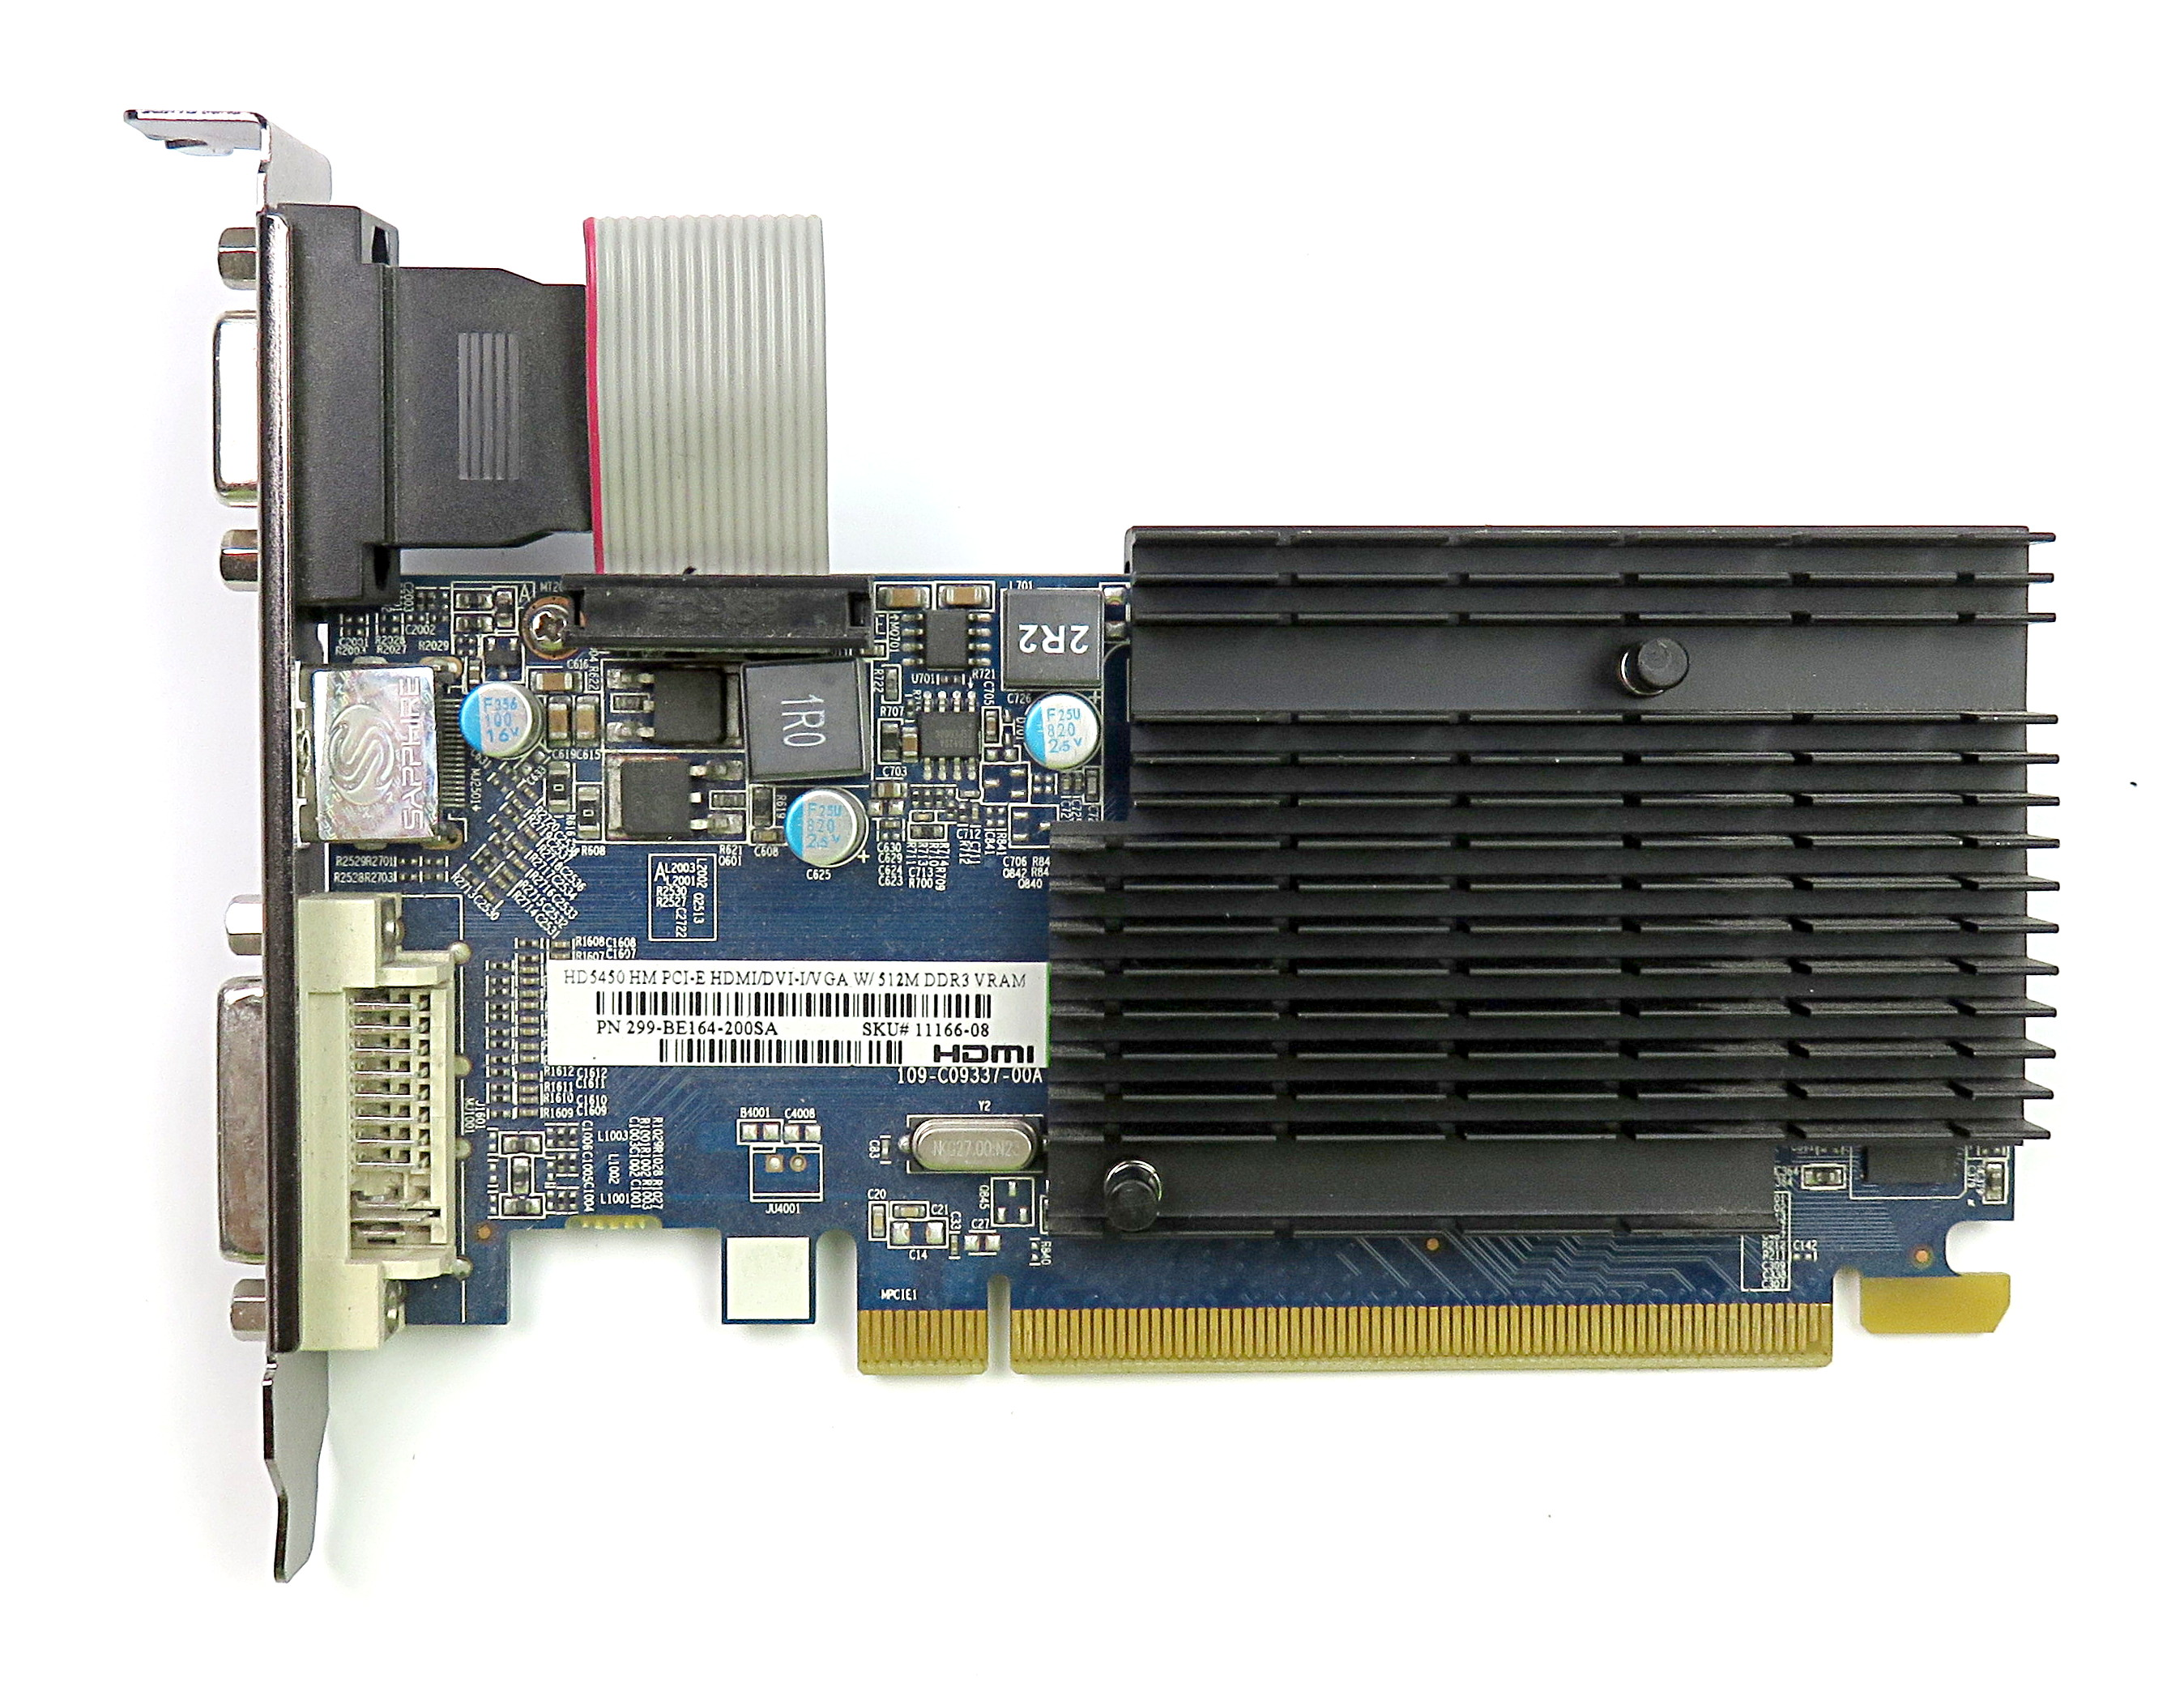 Sapphire 299-BE164-200SA Radeon HD5450 512MB DDR3 HDMI/DVI-I/VGA Graphics Card